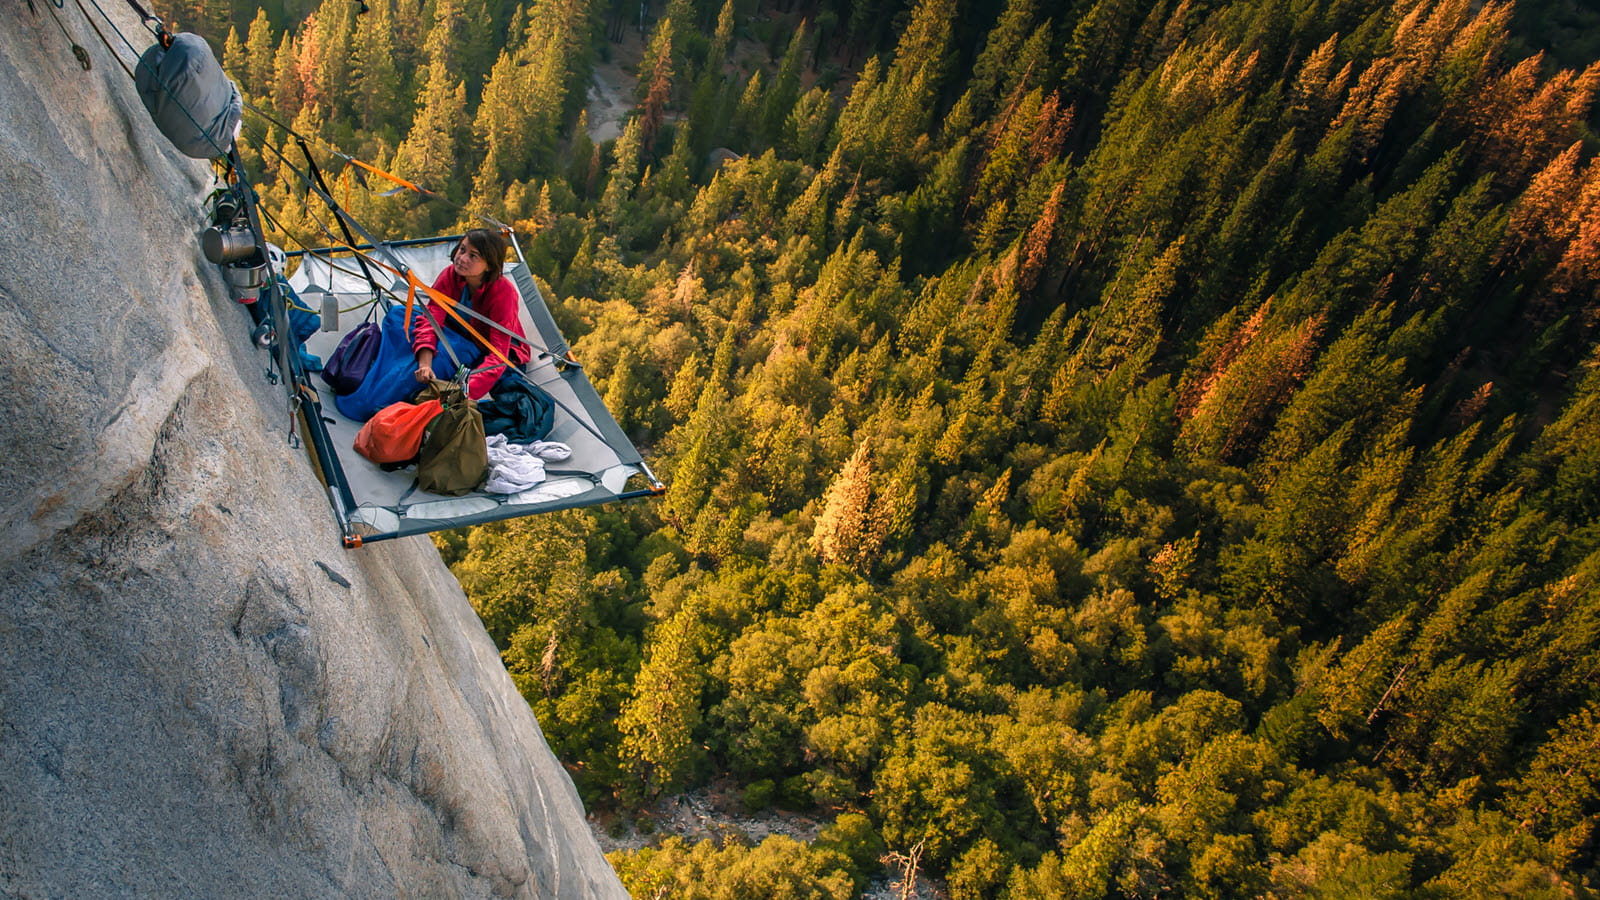 Climber takes a break from climbing hundreds of feet above the trees